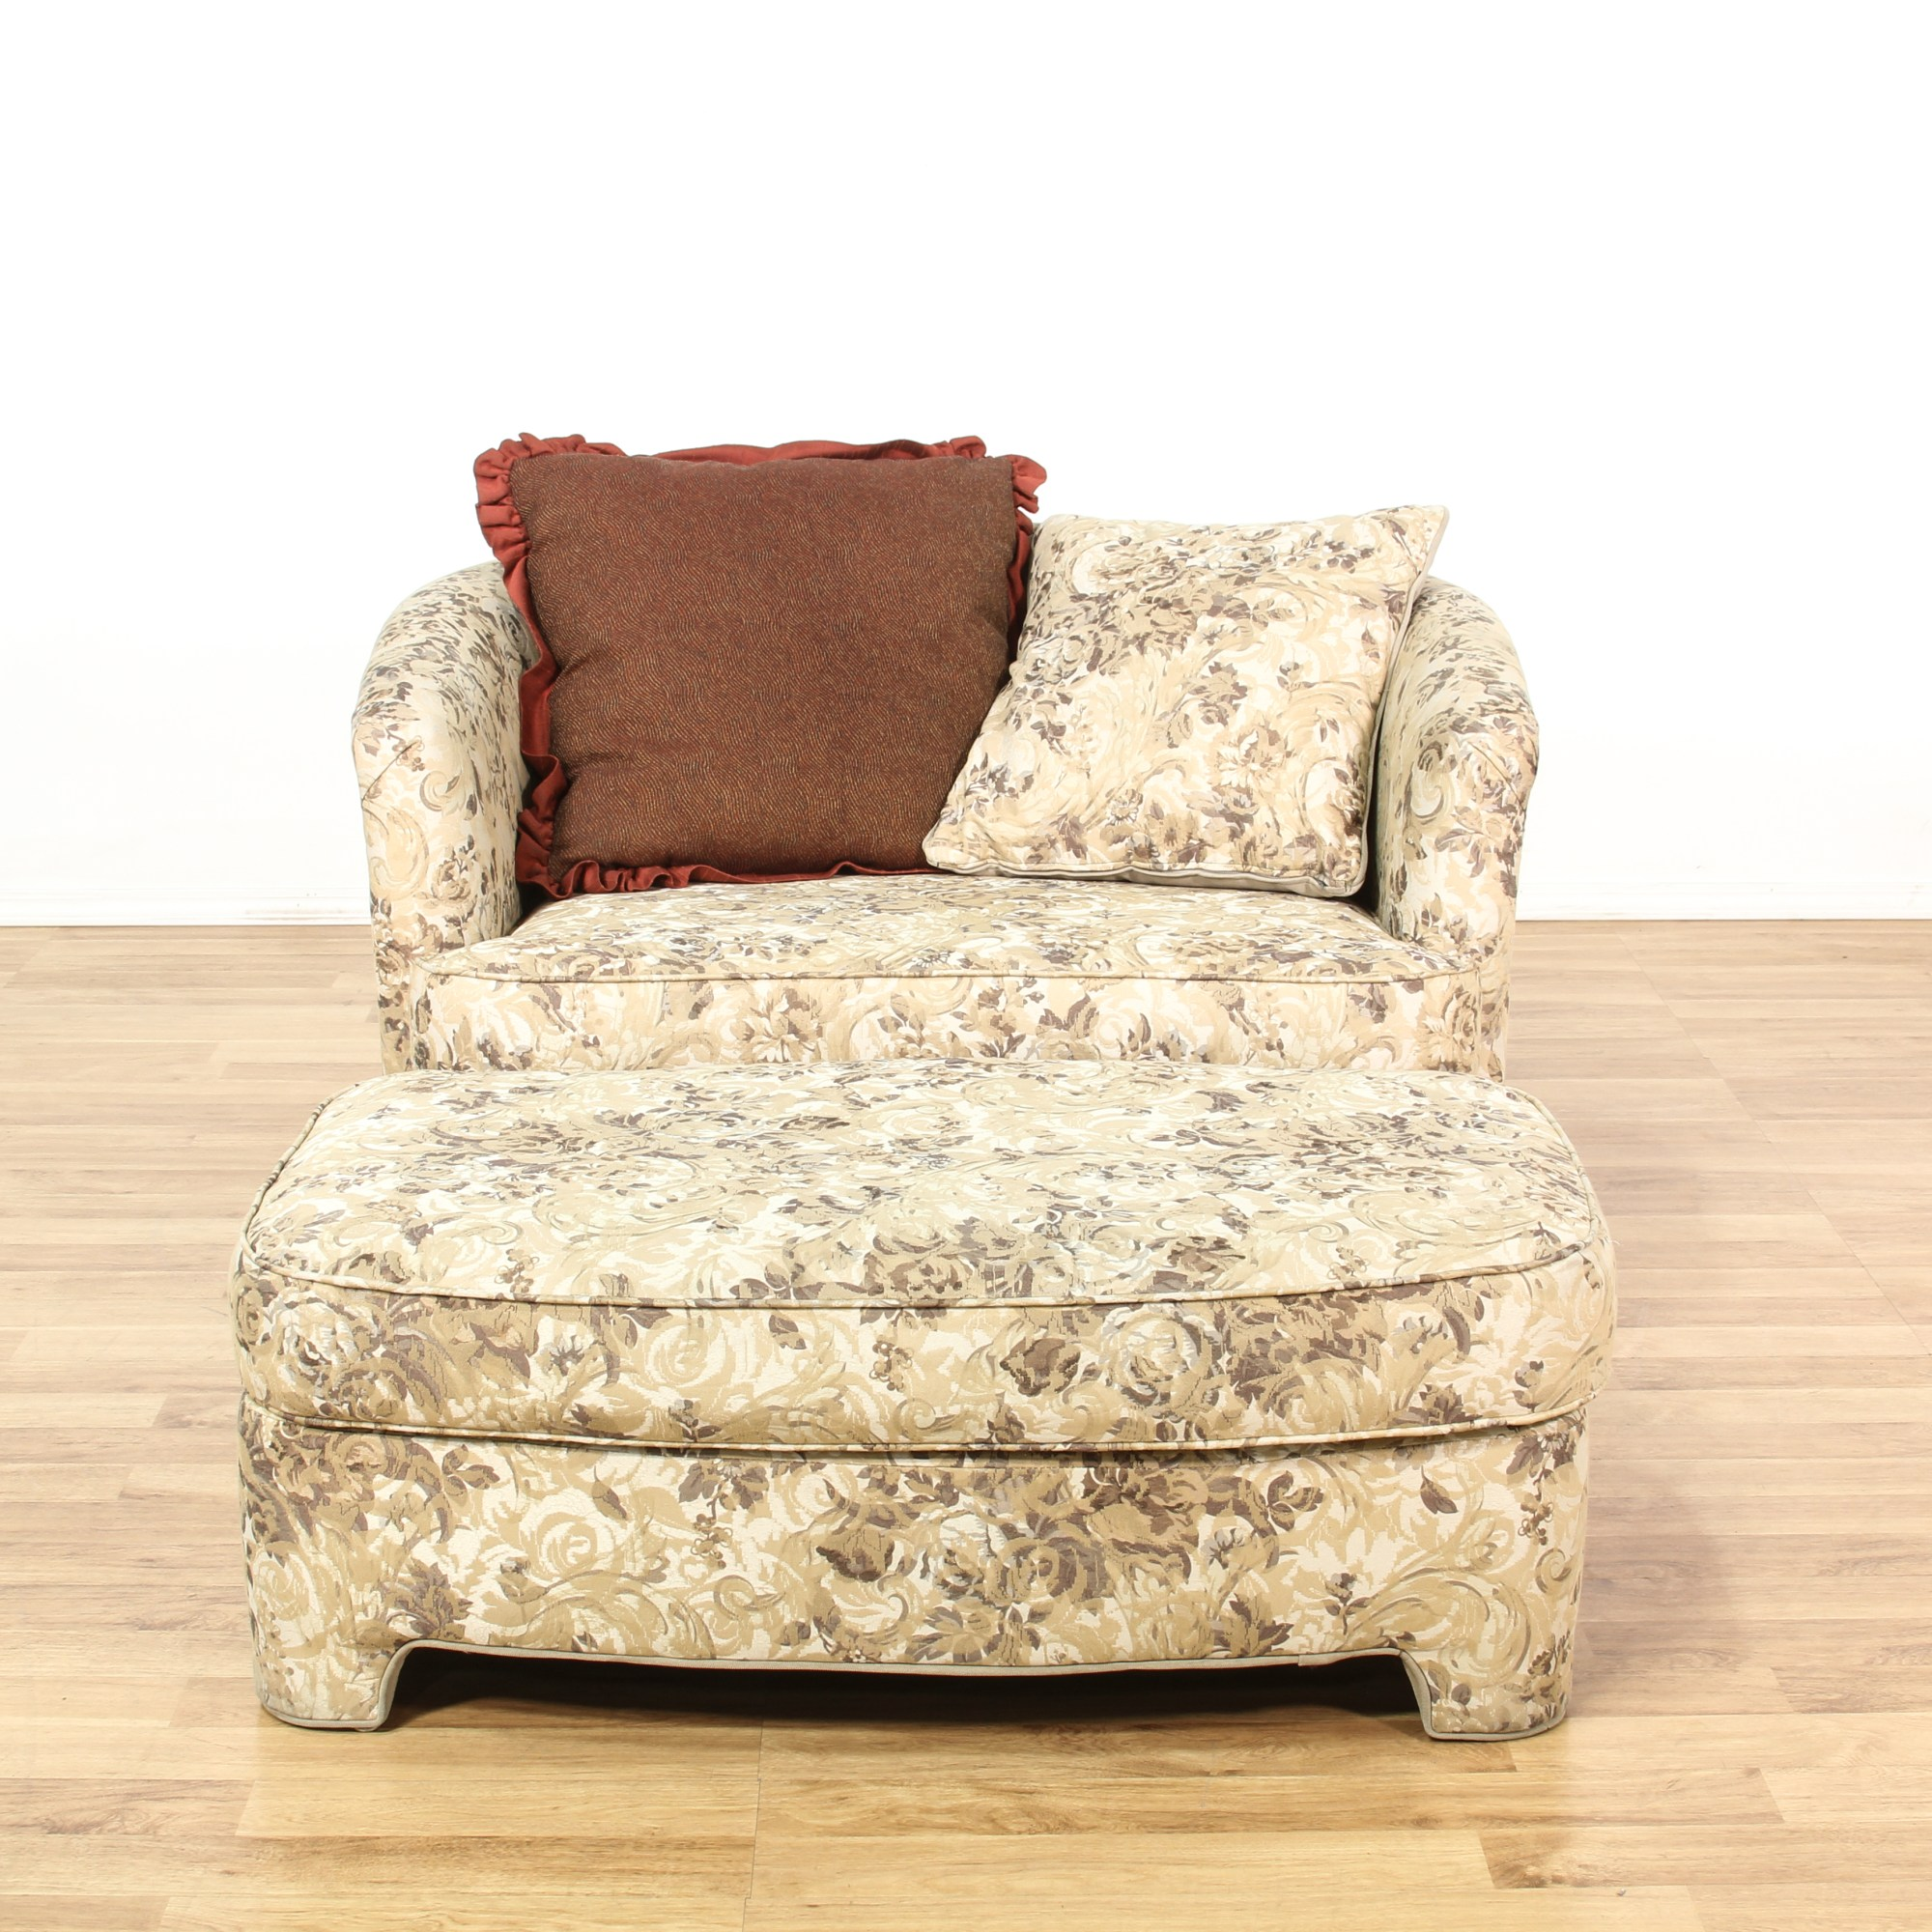 Floral Chairs Floral Upholstered Round Back Chair And Ottoman Loveseat